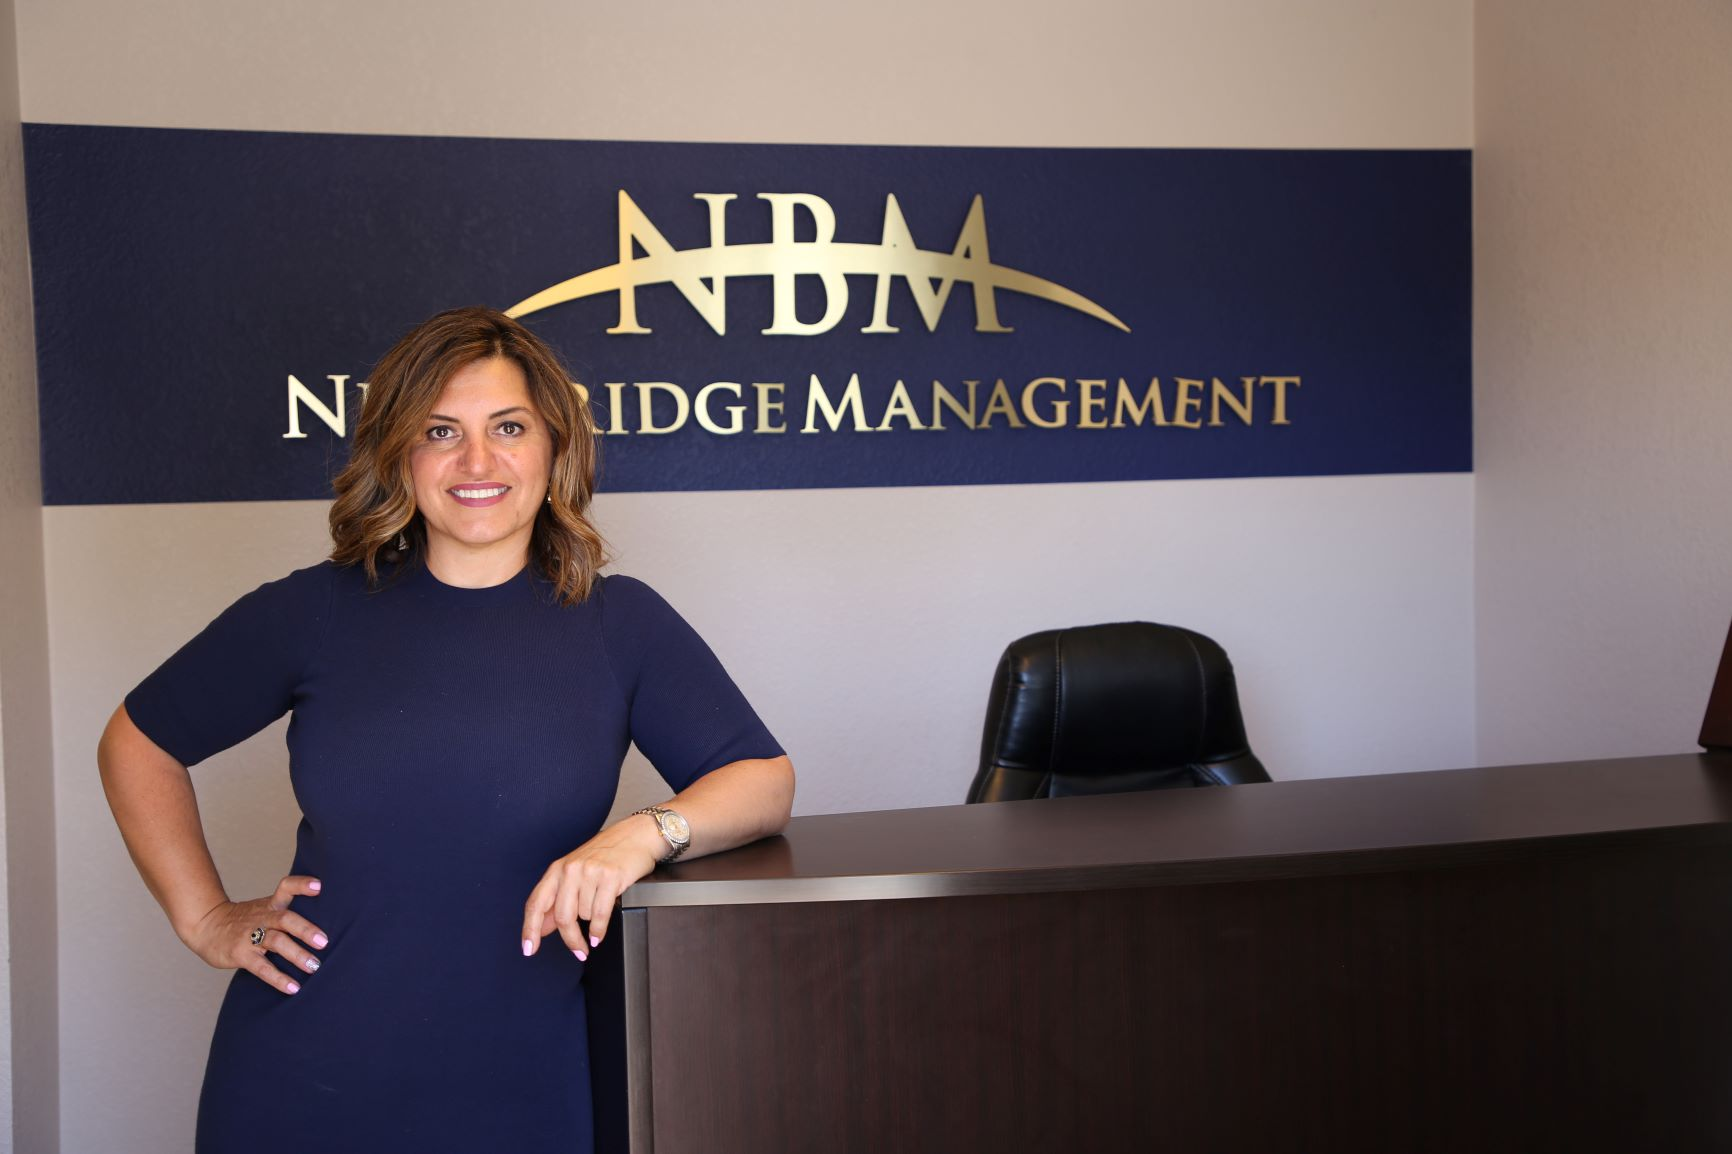 President and CEO of Turlock, California-based New Bridge Management (NBM) Adrian Harrell